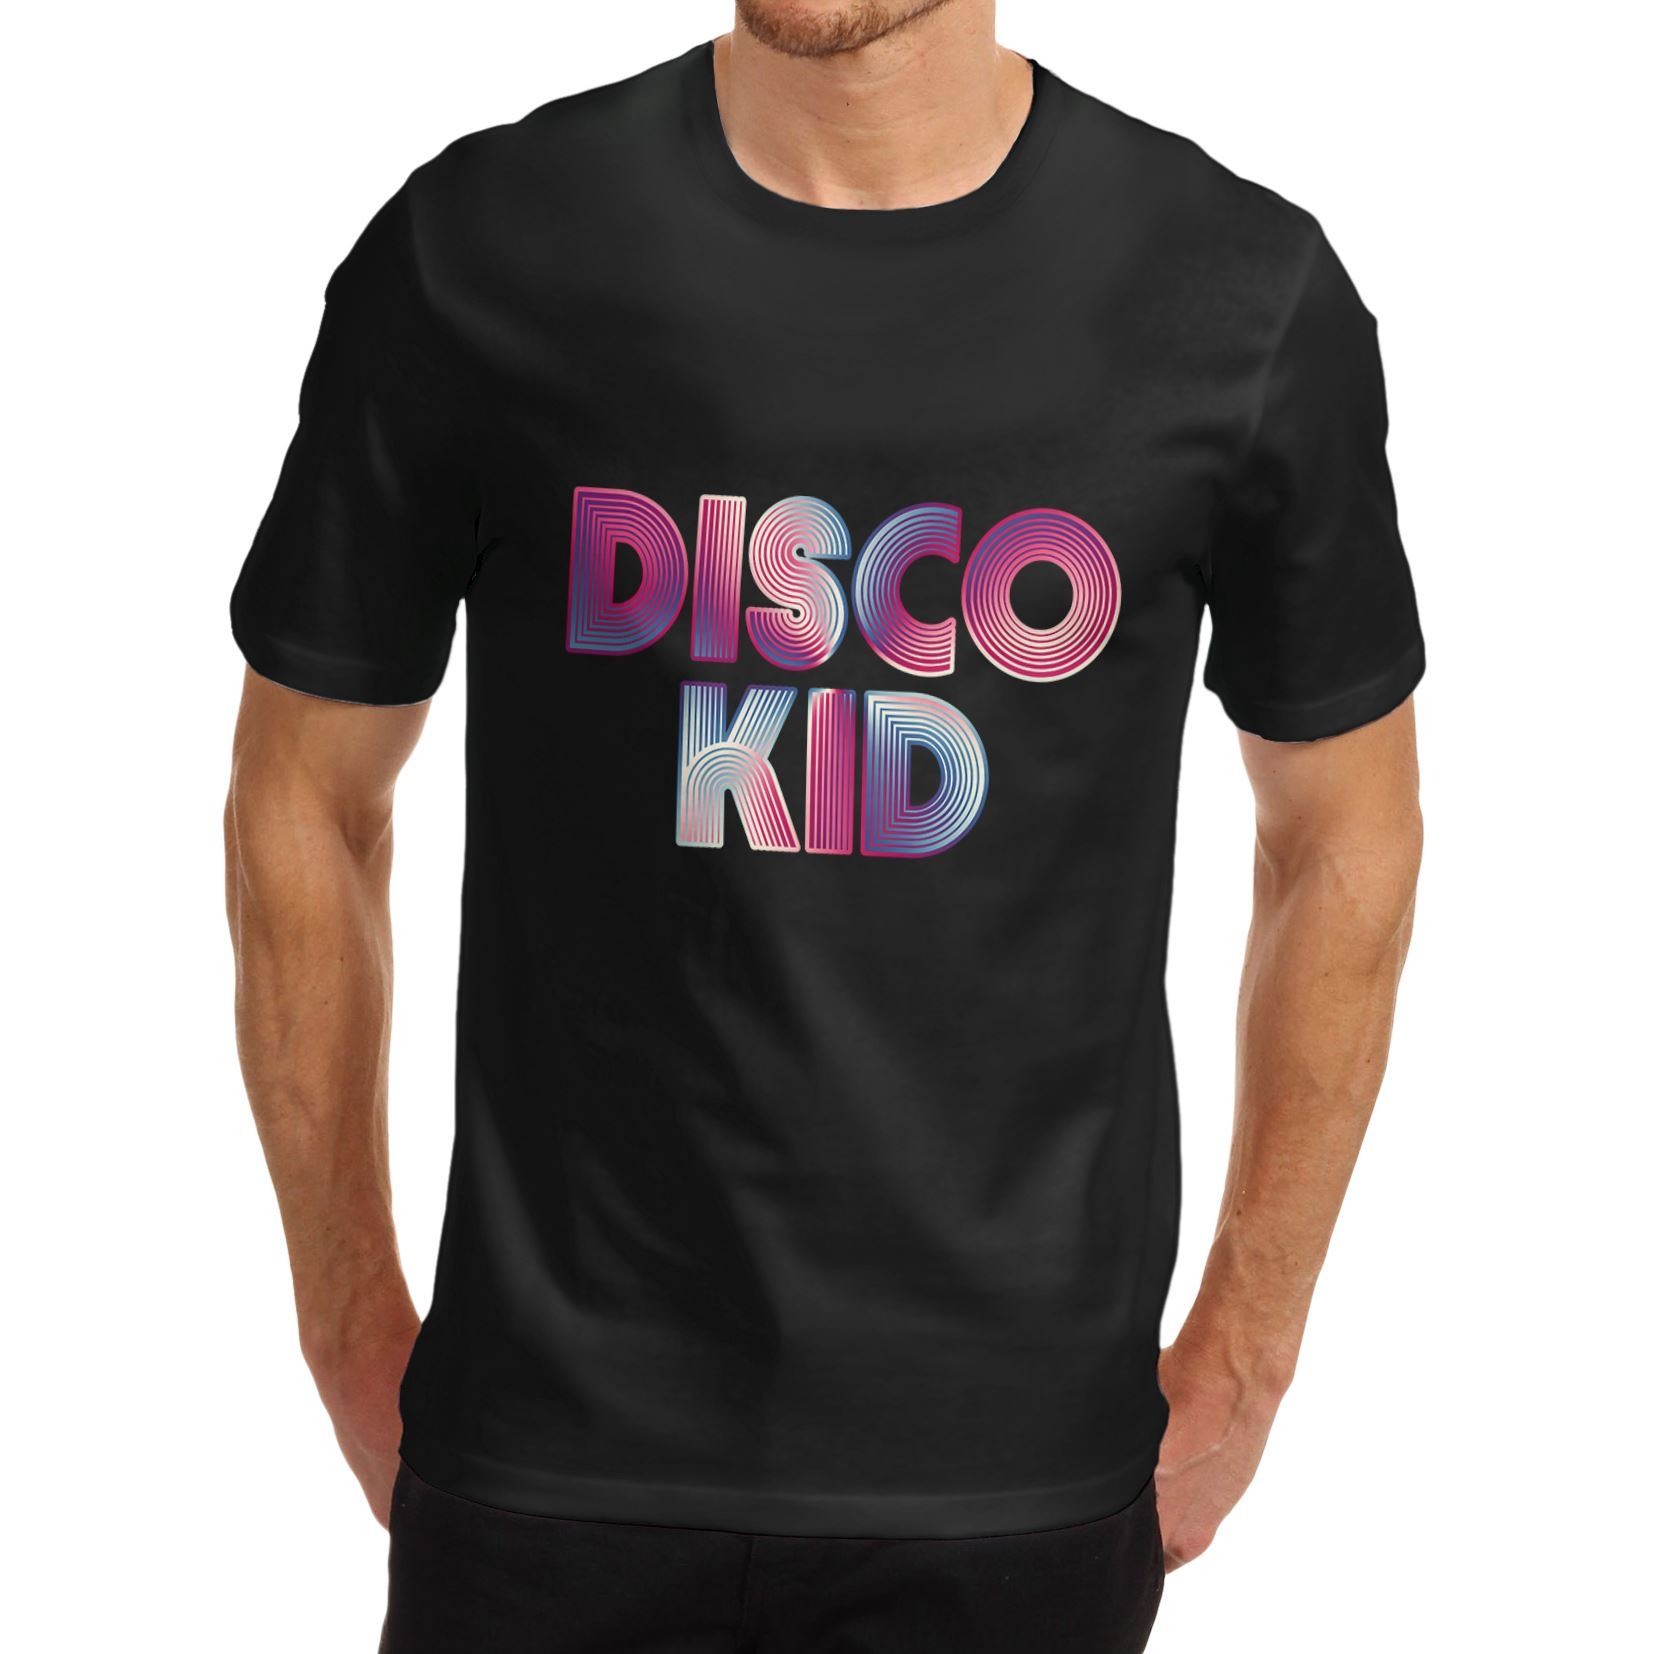 Black t shirt ebay - Twisted Envy Men 039 S Disco Kid T